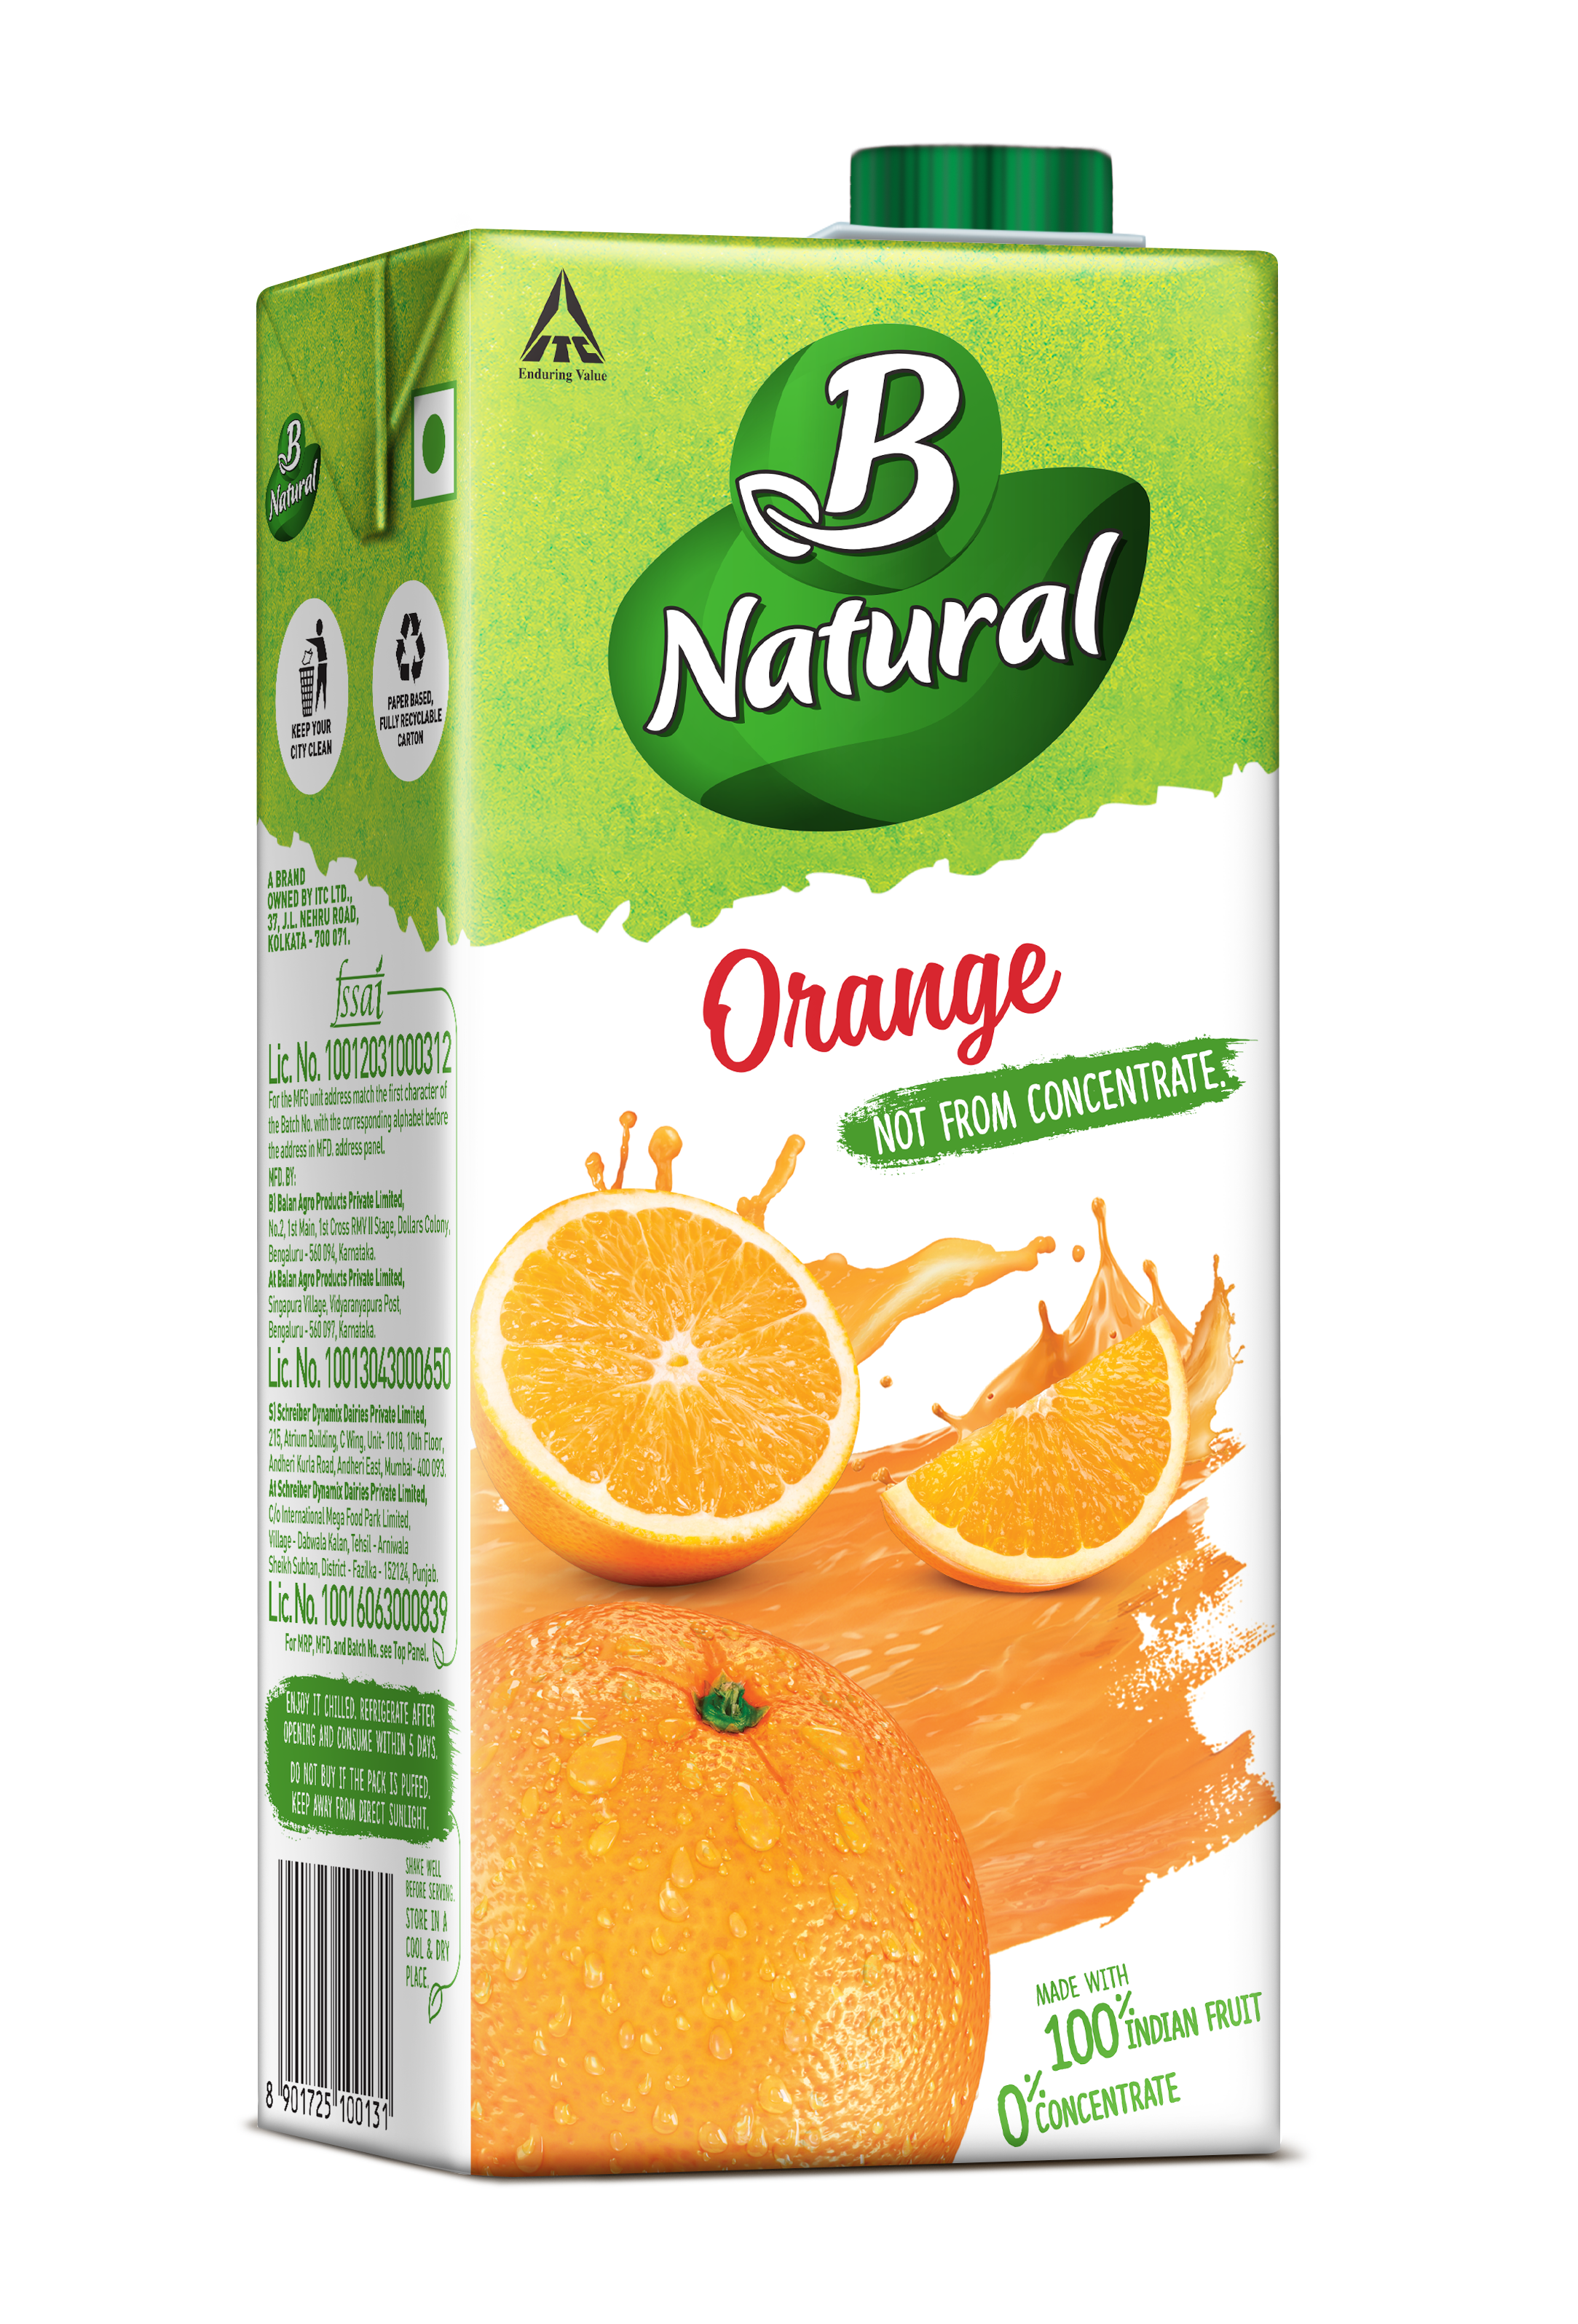 B Natural ORANGE Drinks